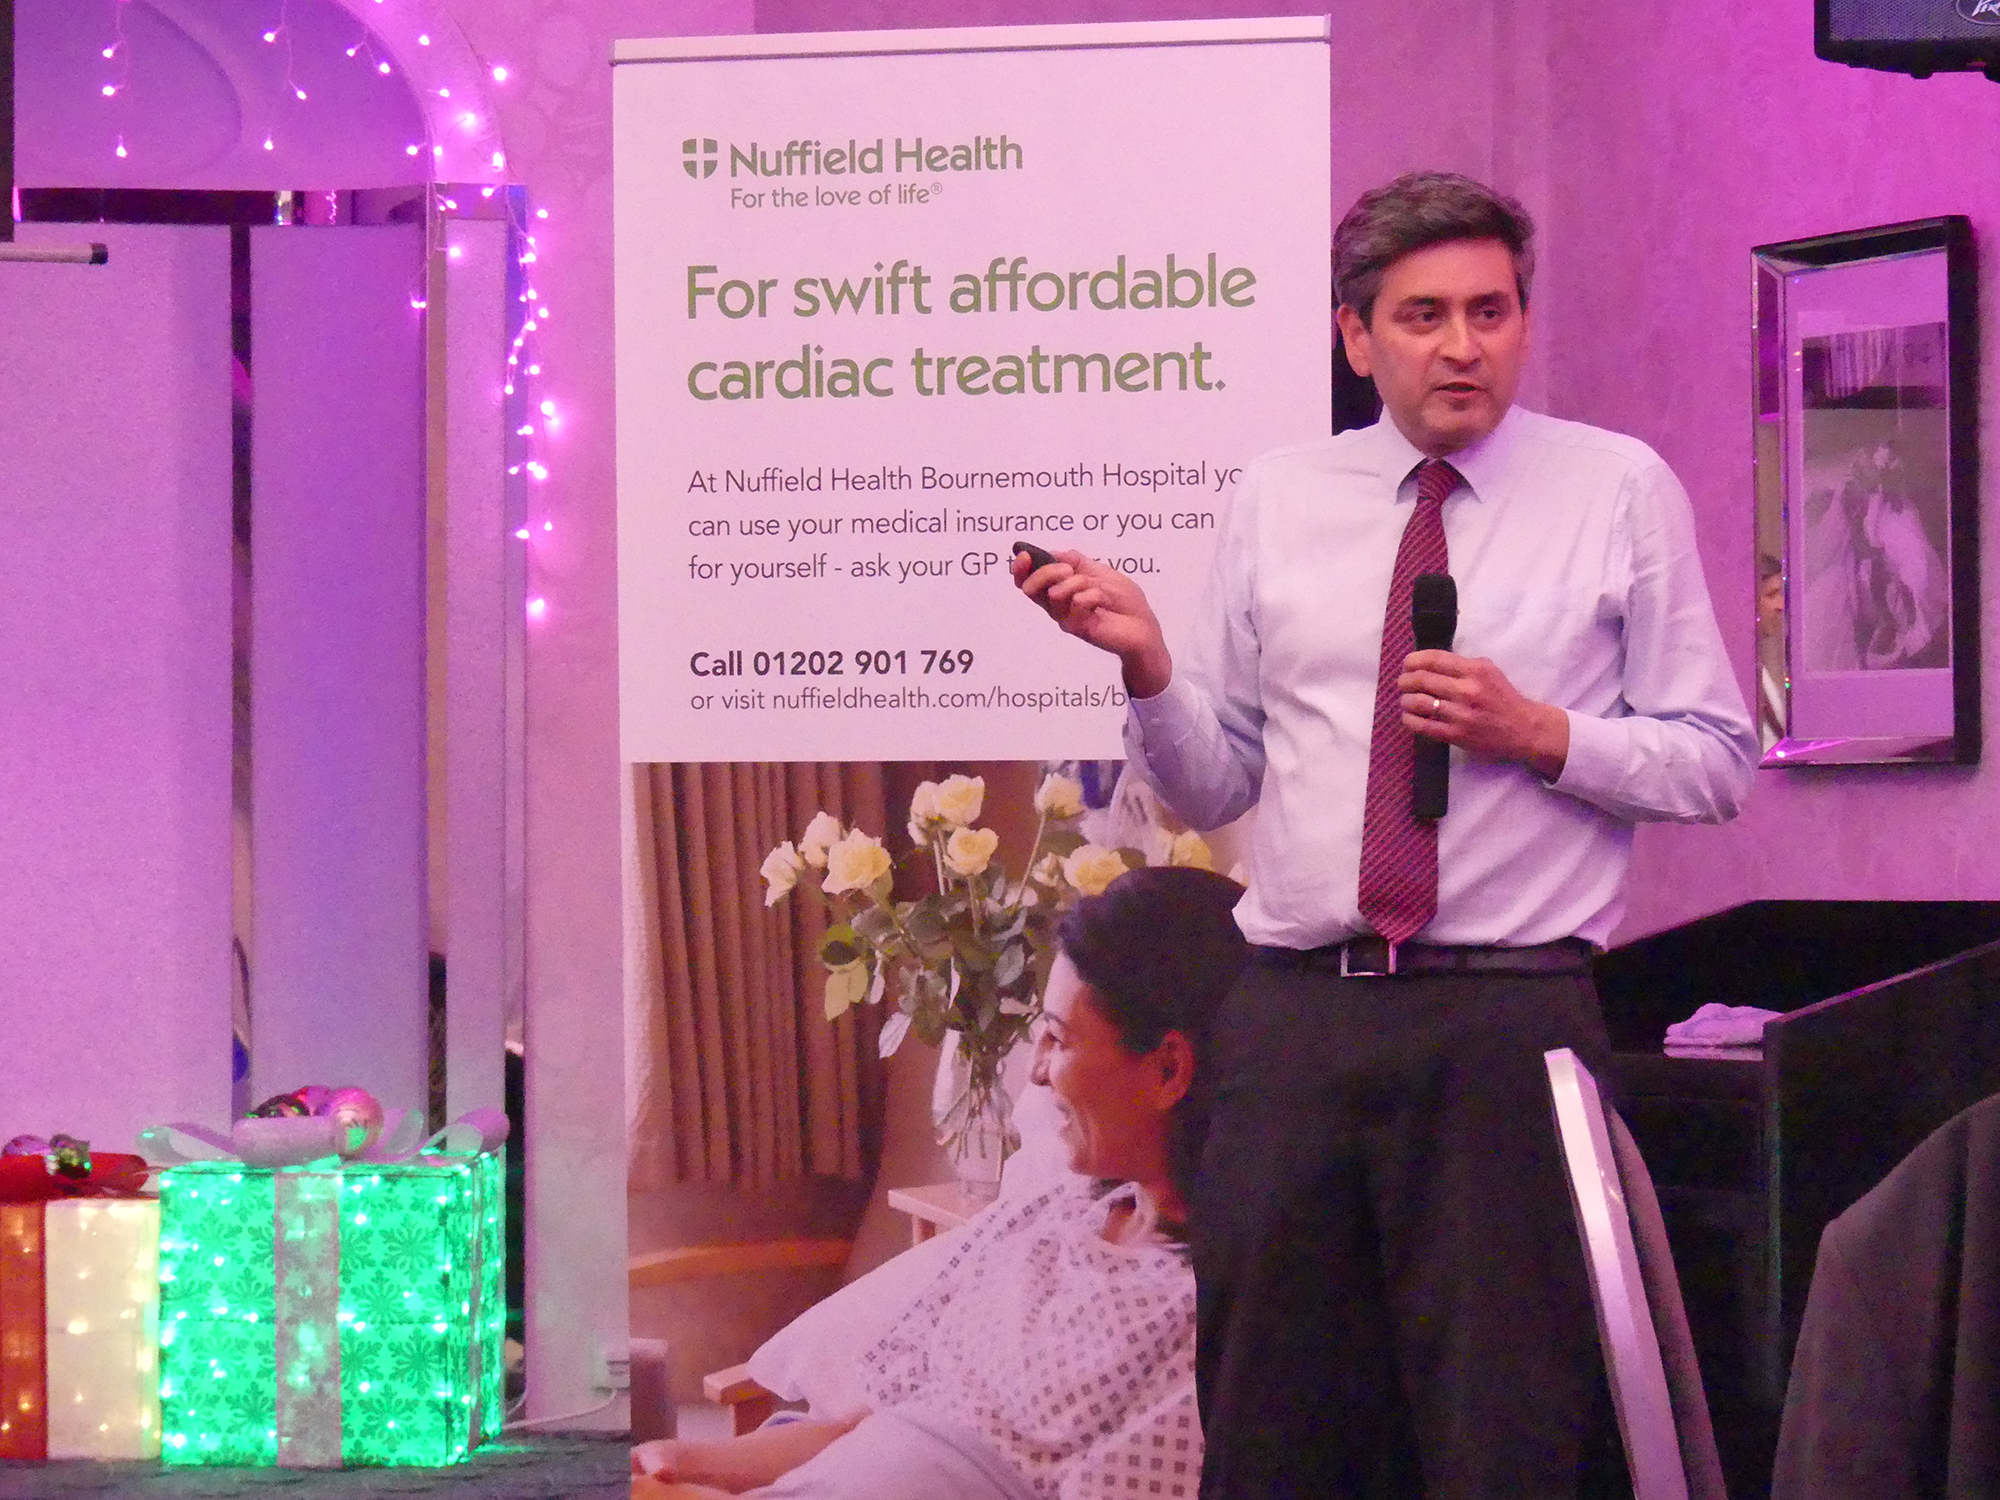 Nuffield Health's cardiology consultant Dr Suneel Talwar welcomes Dorset GPs for a heart-to-heart